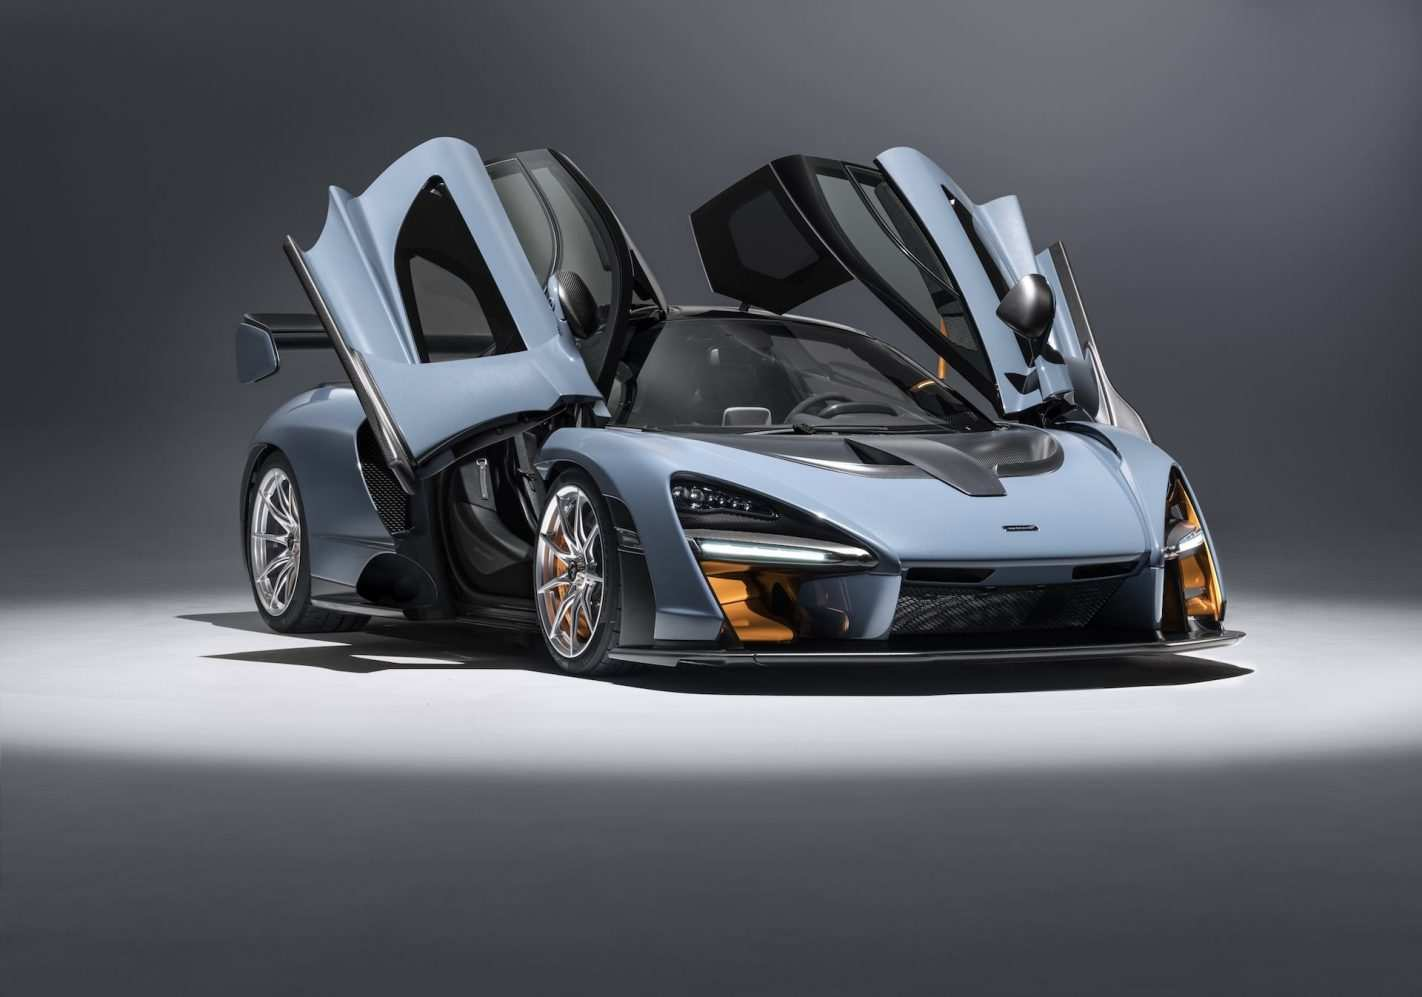 98 The 2019 Mclaren Sedan Picture for 2019 Mclaren Sedan